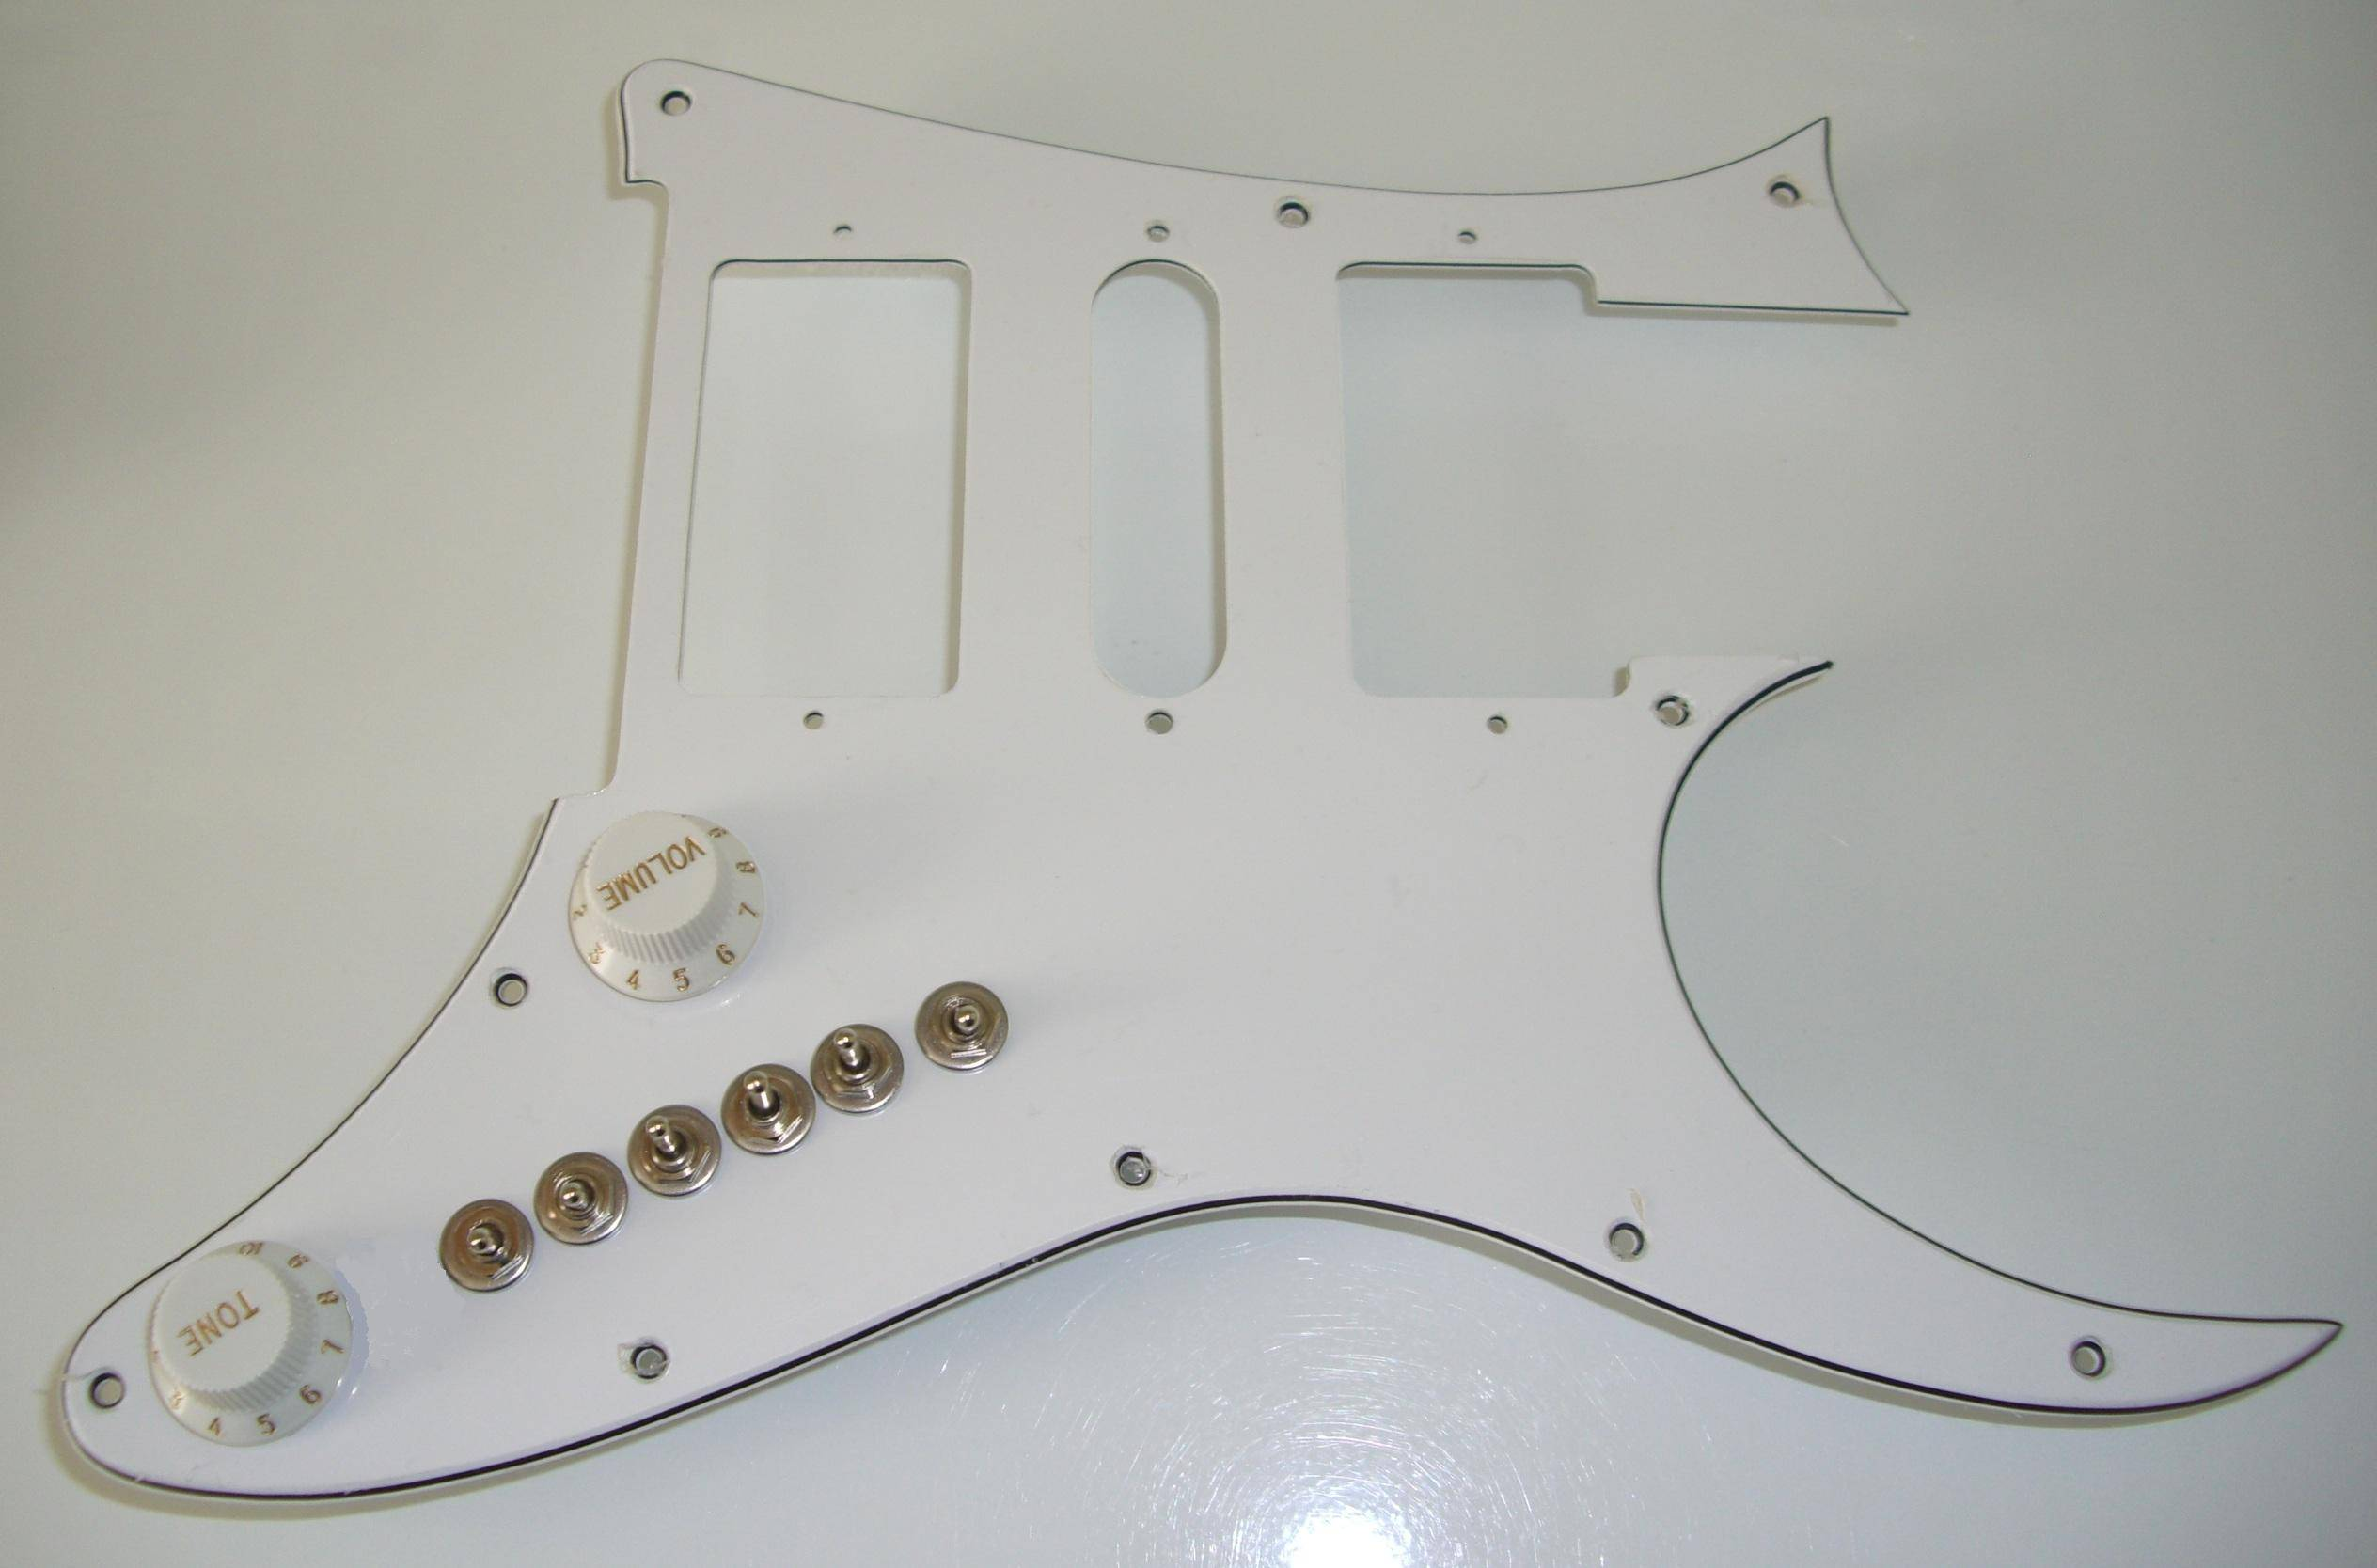 Ibanez Jem Or Rg350dx Hsh Guitar Upgrade Gives You 35 Pickup Tones Wiring Straight To Jack T3 For Your Pickups